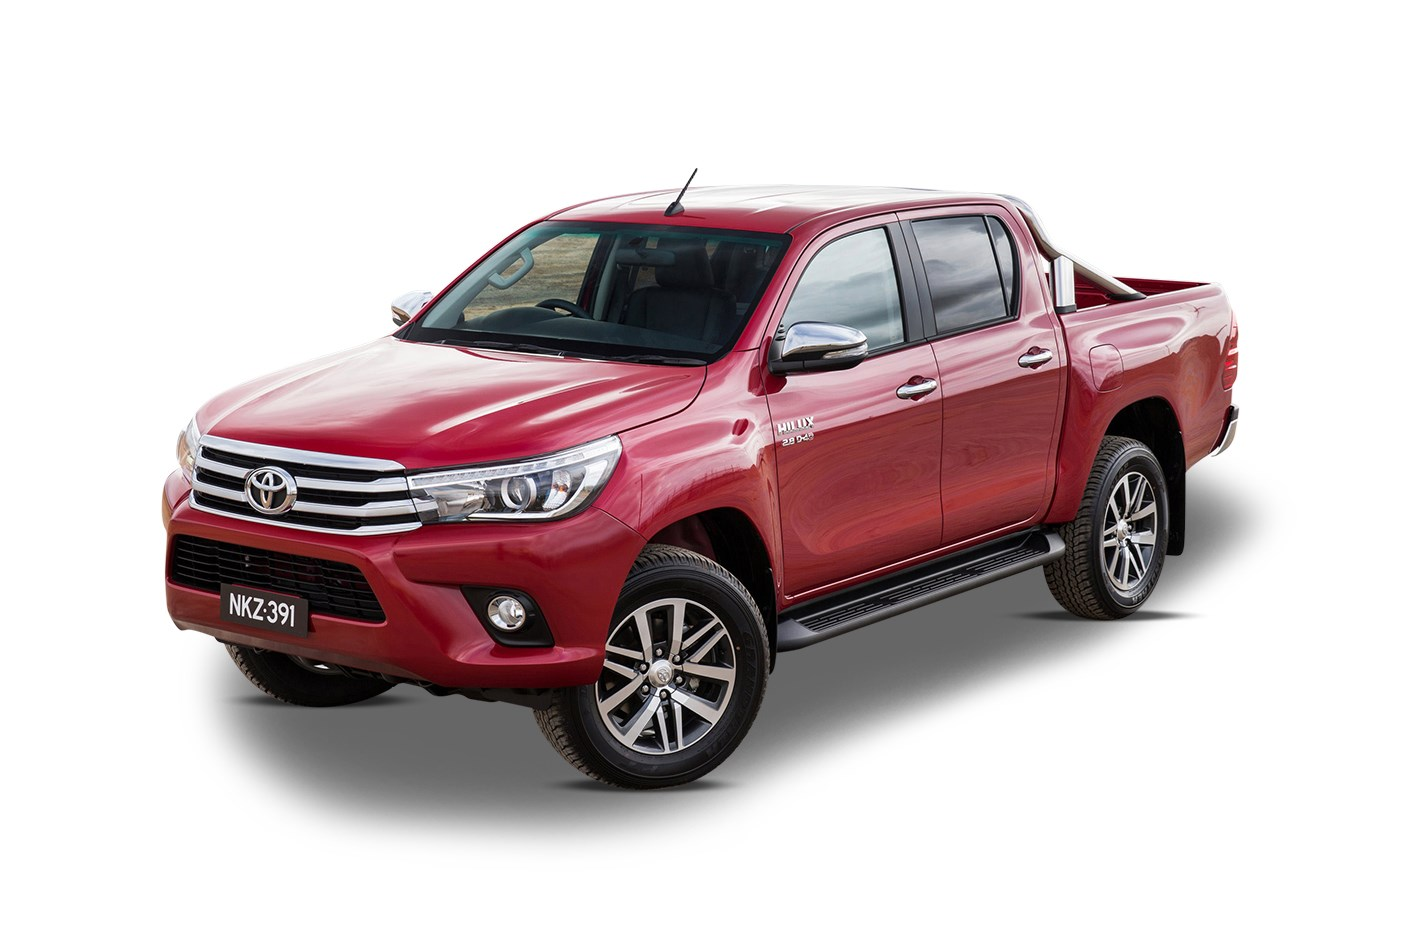 2016 toyota hilux sr 4x4 cab chassis review caradvice - 2017 Toyota Hilux Sr5 4x4 2 8l 4cyl Diesel Turbocharged Automatic Ute